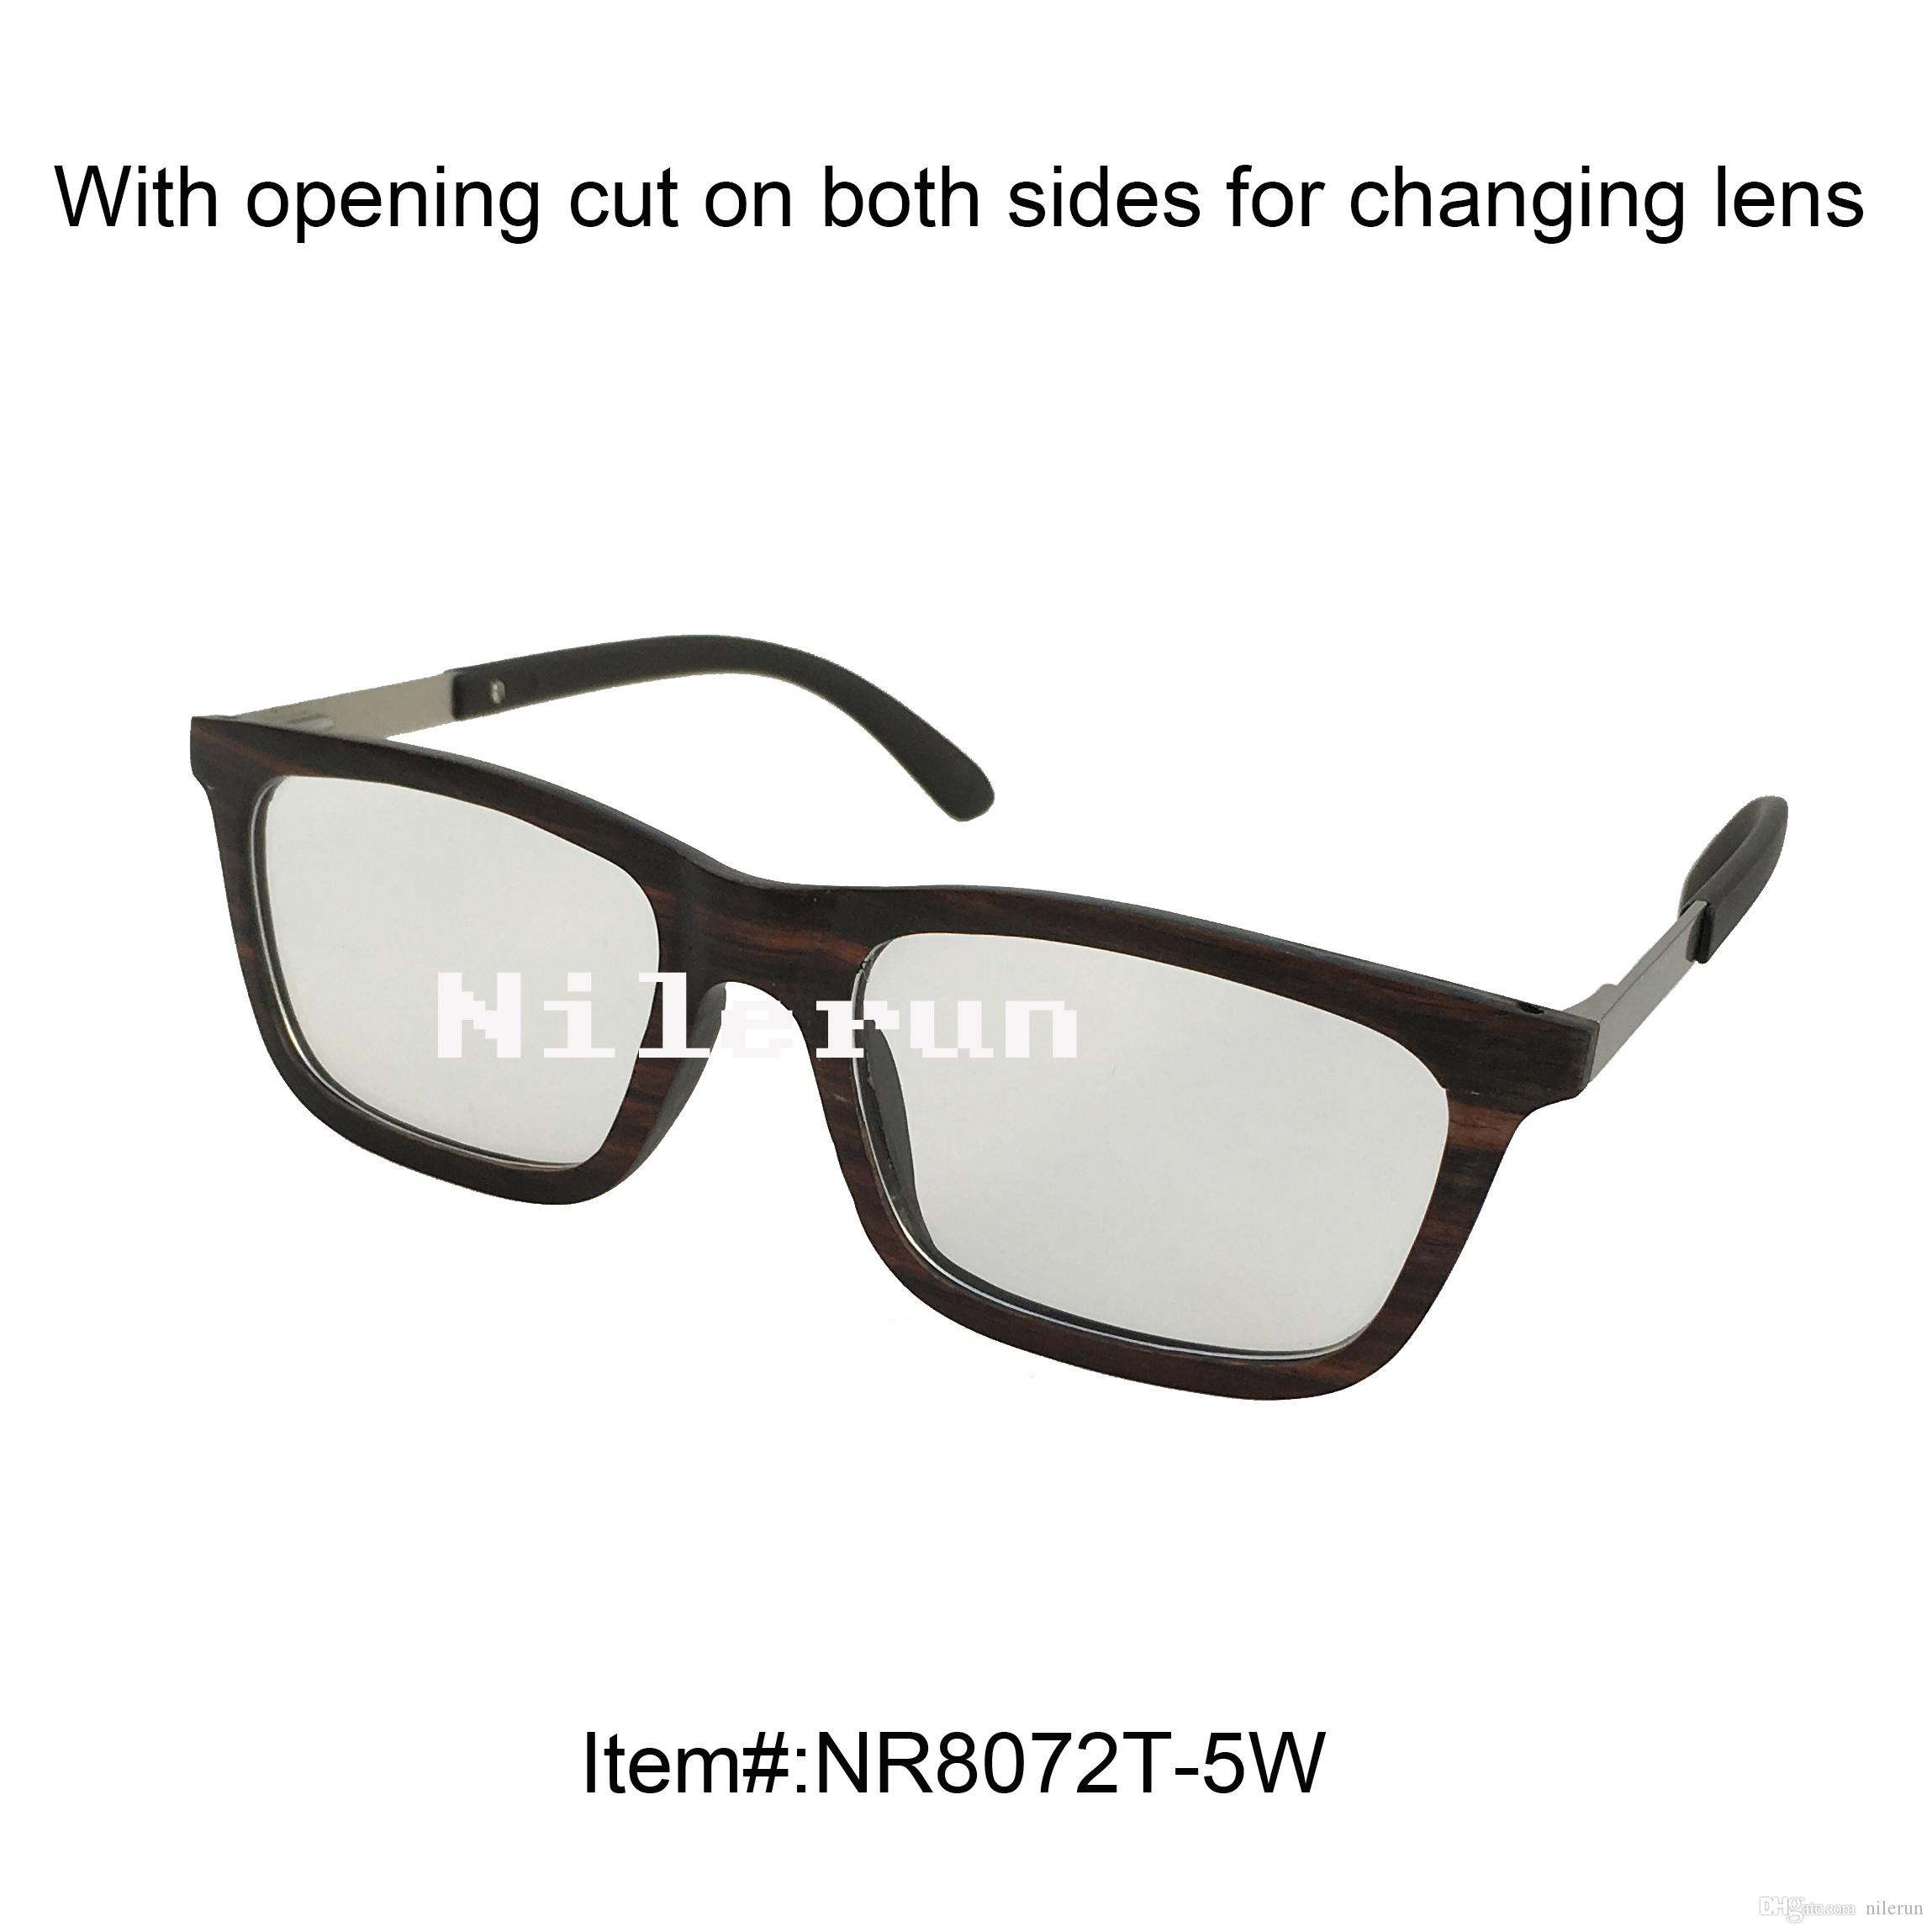 7a4d6504fc Ultra Light Thin Small Square Wood Frame Optical Eyewear With Plain Clear  Lens And Metal Temples Women Eyeglass Frames Best Eyeglasses Frames From  Nilerun